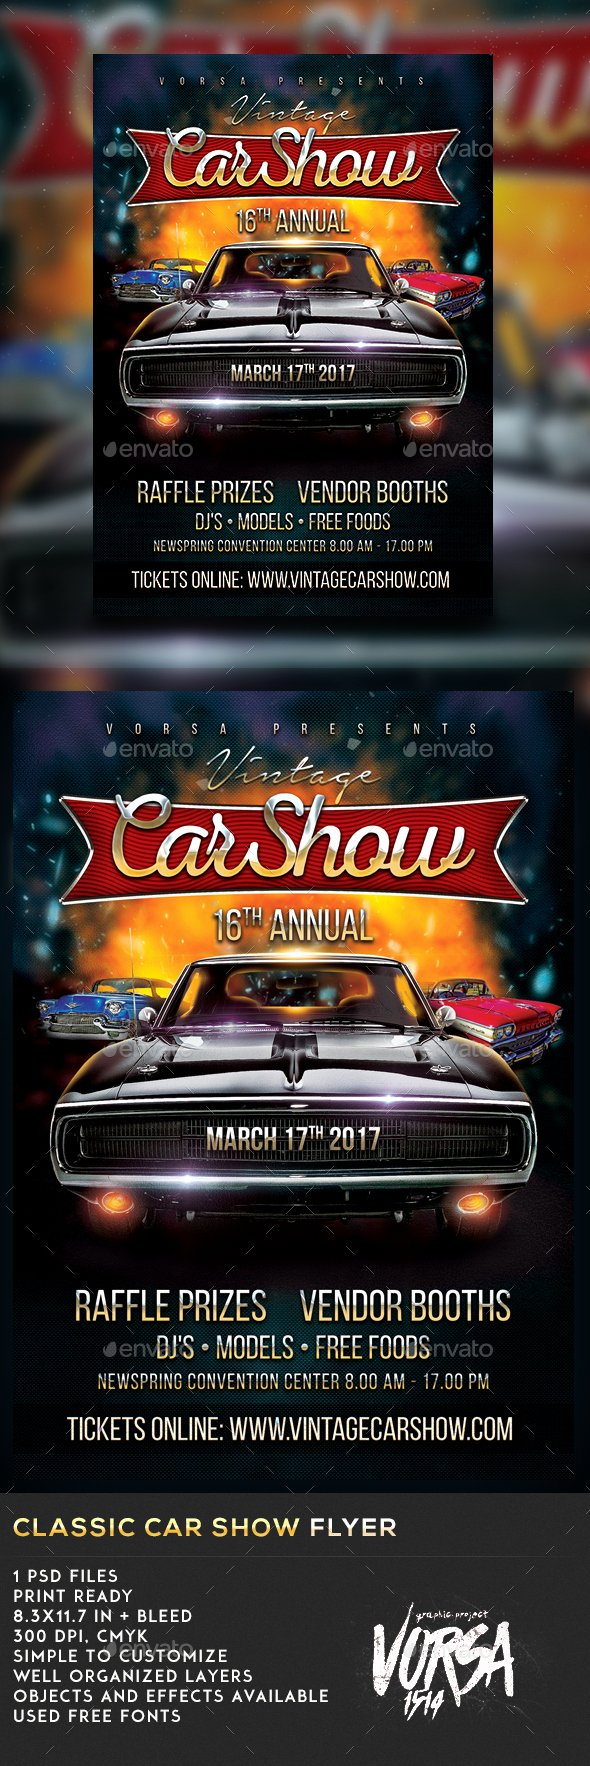 Car Show Flyer Template Free Inspirational Classic Car Show Flyer by Vorsa